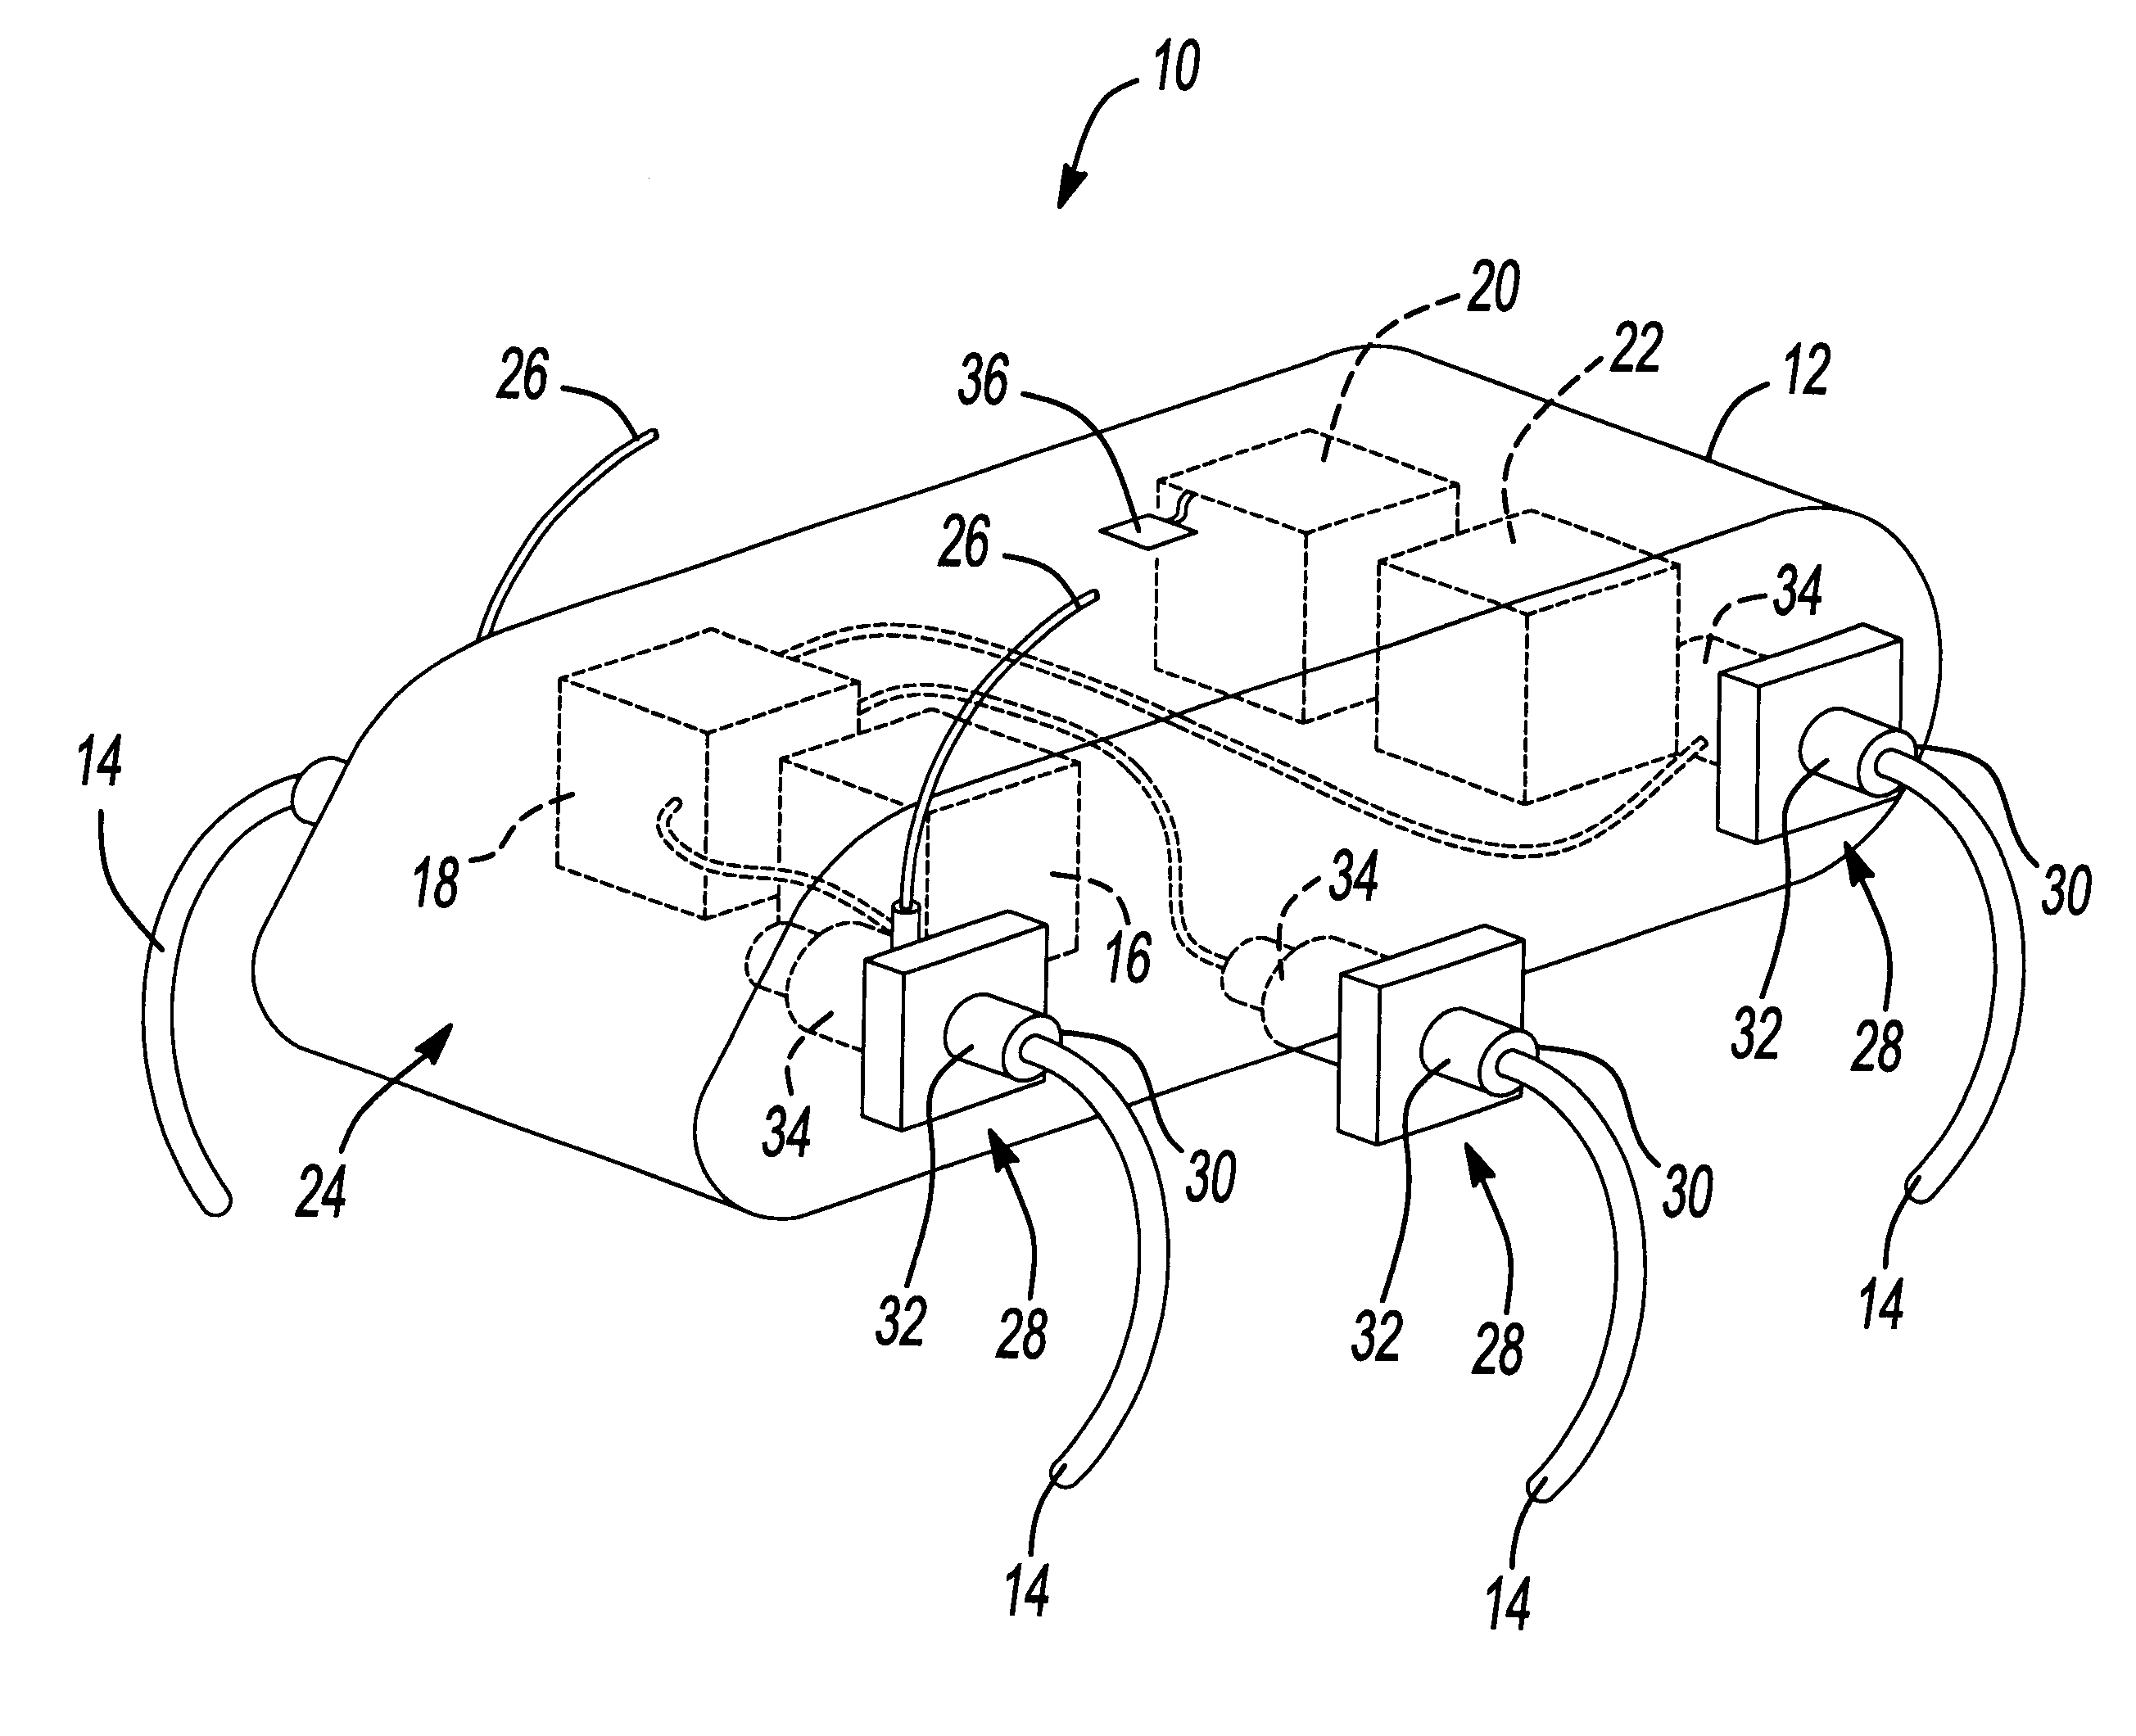 patent us6481513 single actuator per leg robotic hexapod